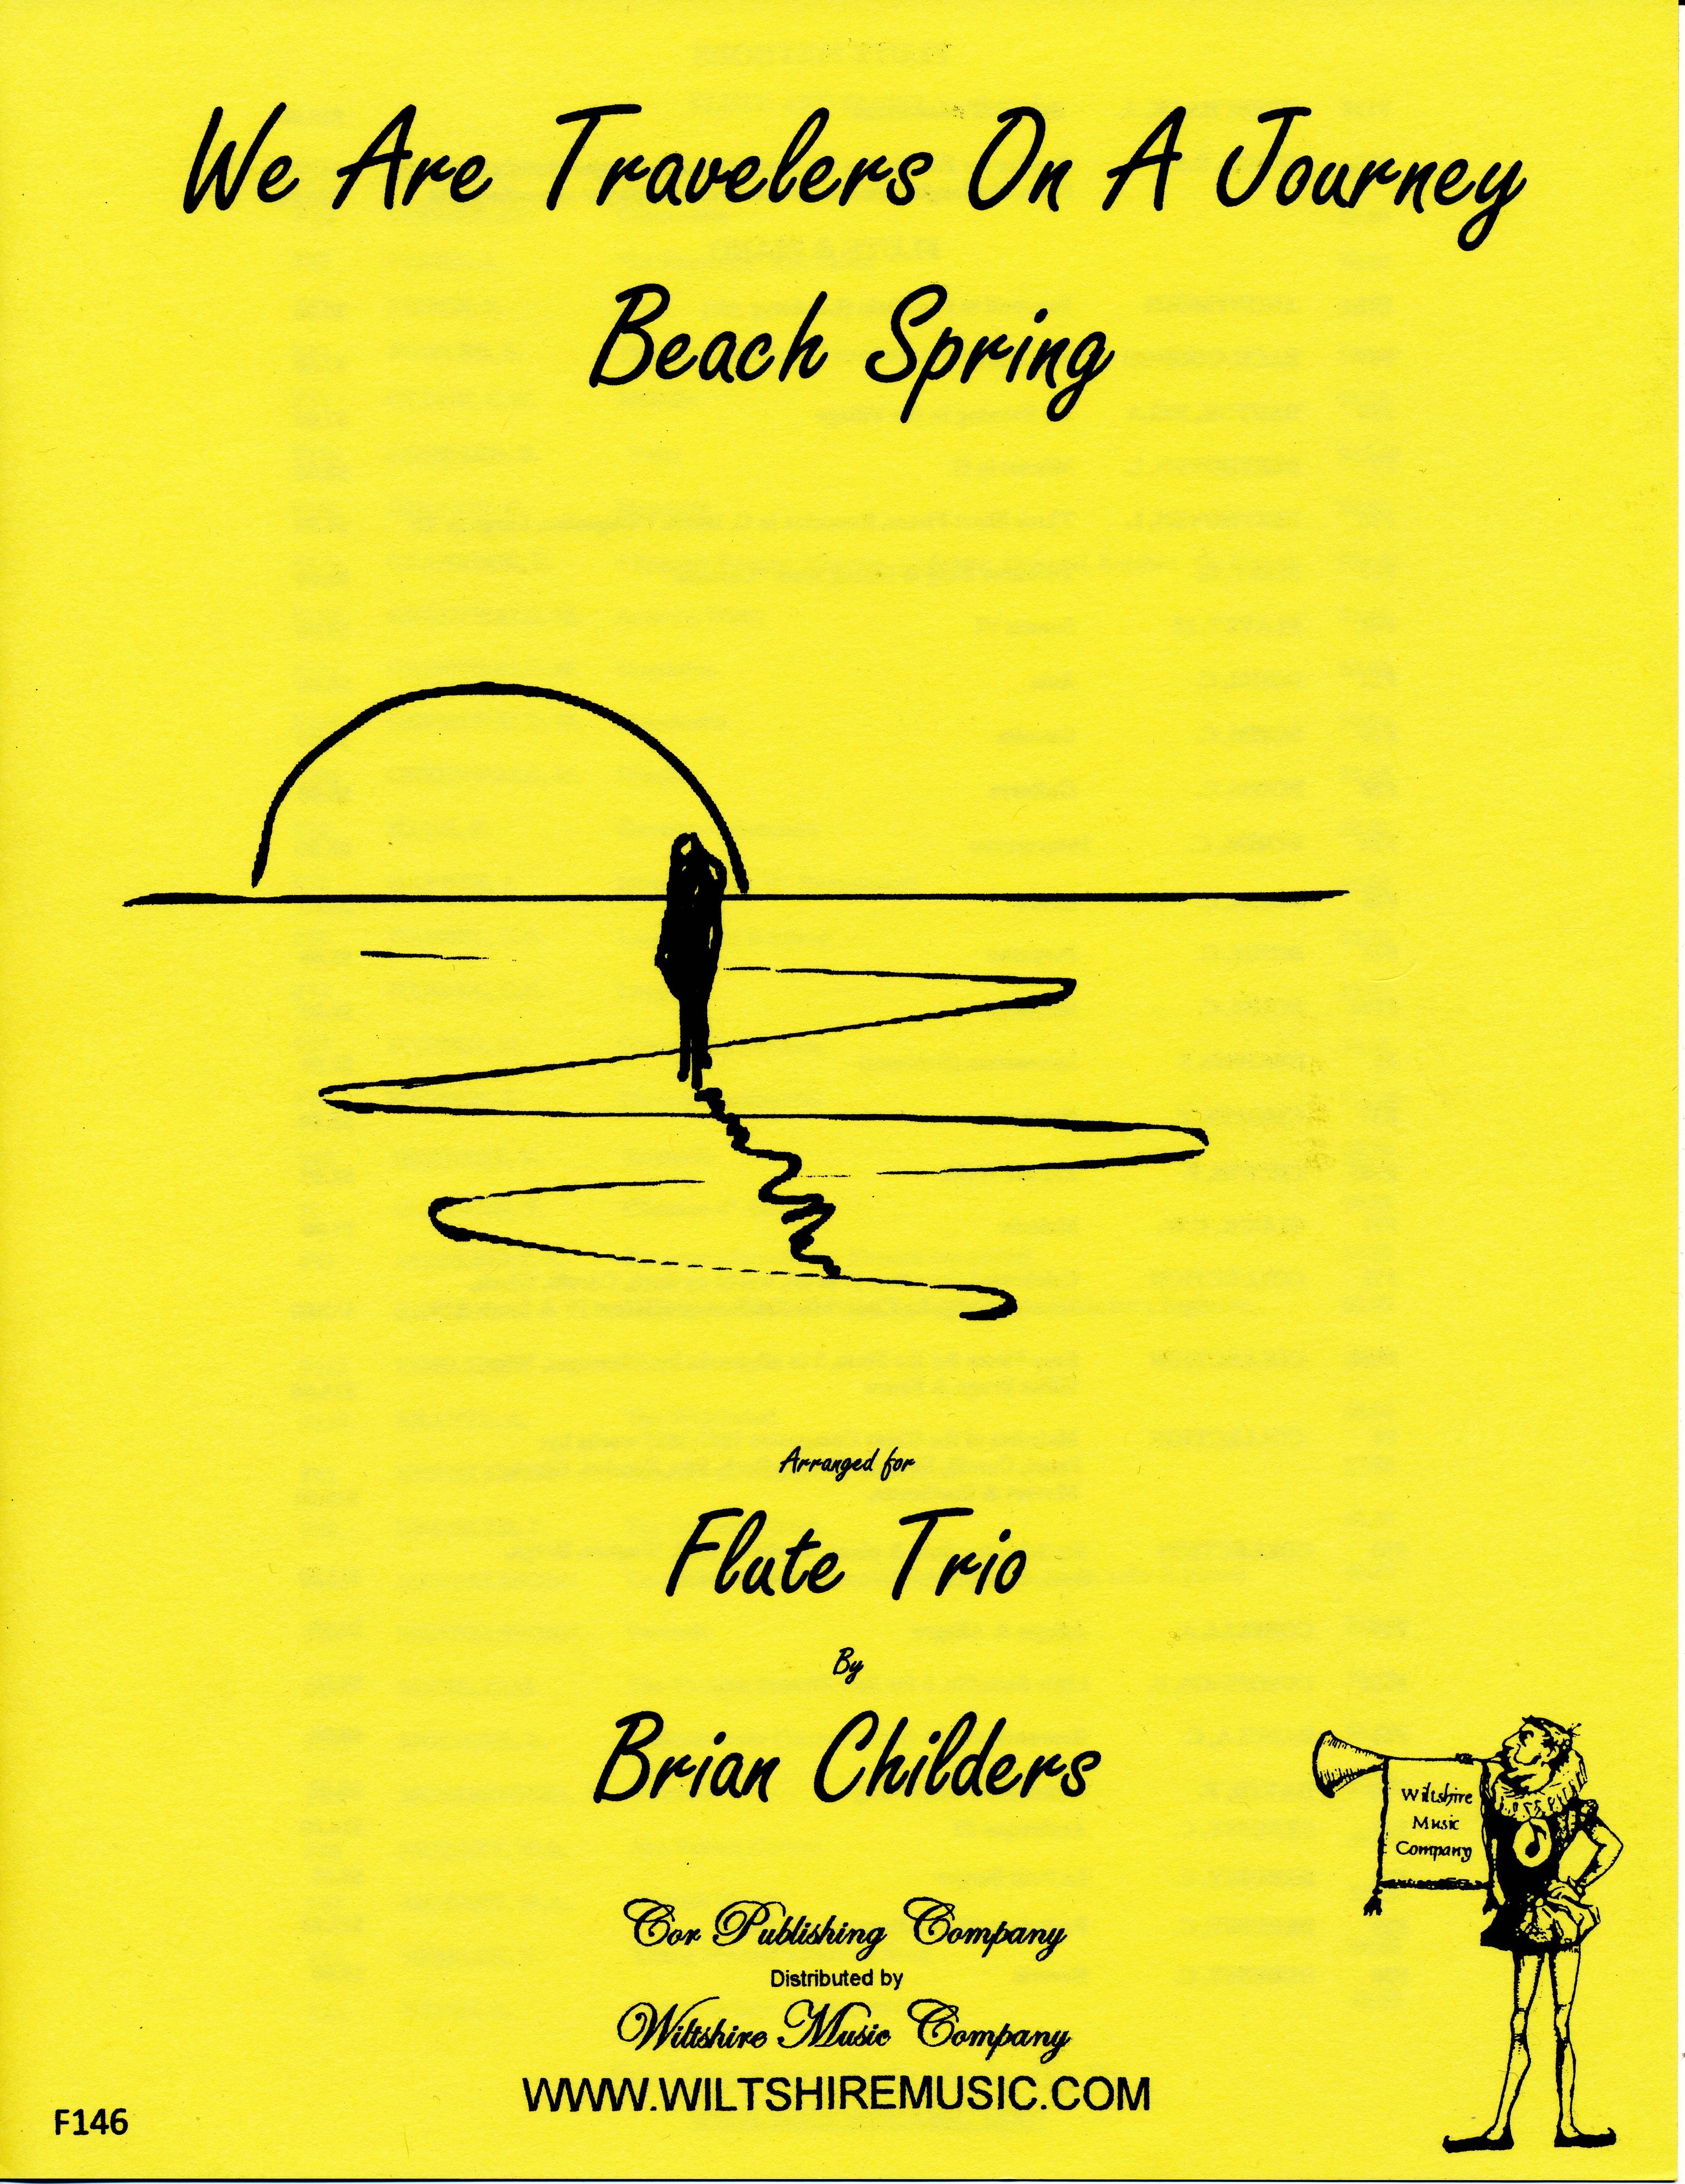 We Are Travelers on a Journey  ( Beach Spring), arr. Childers